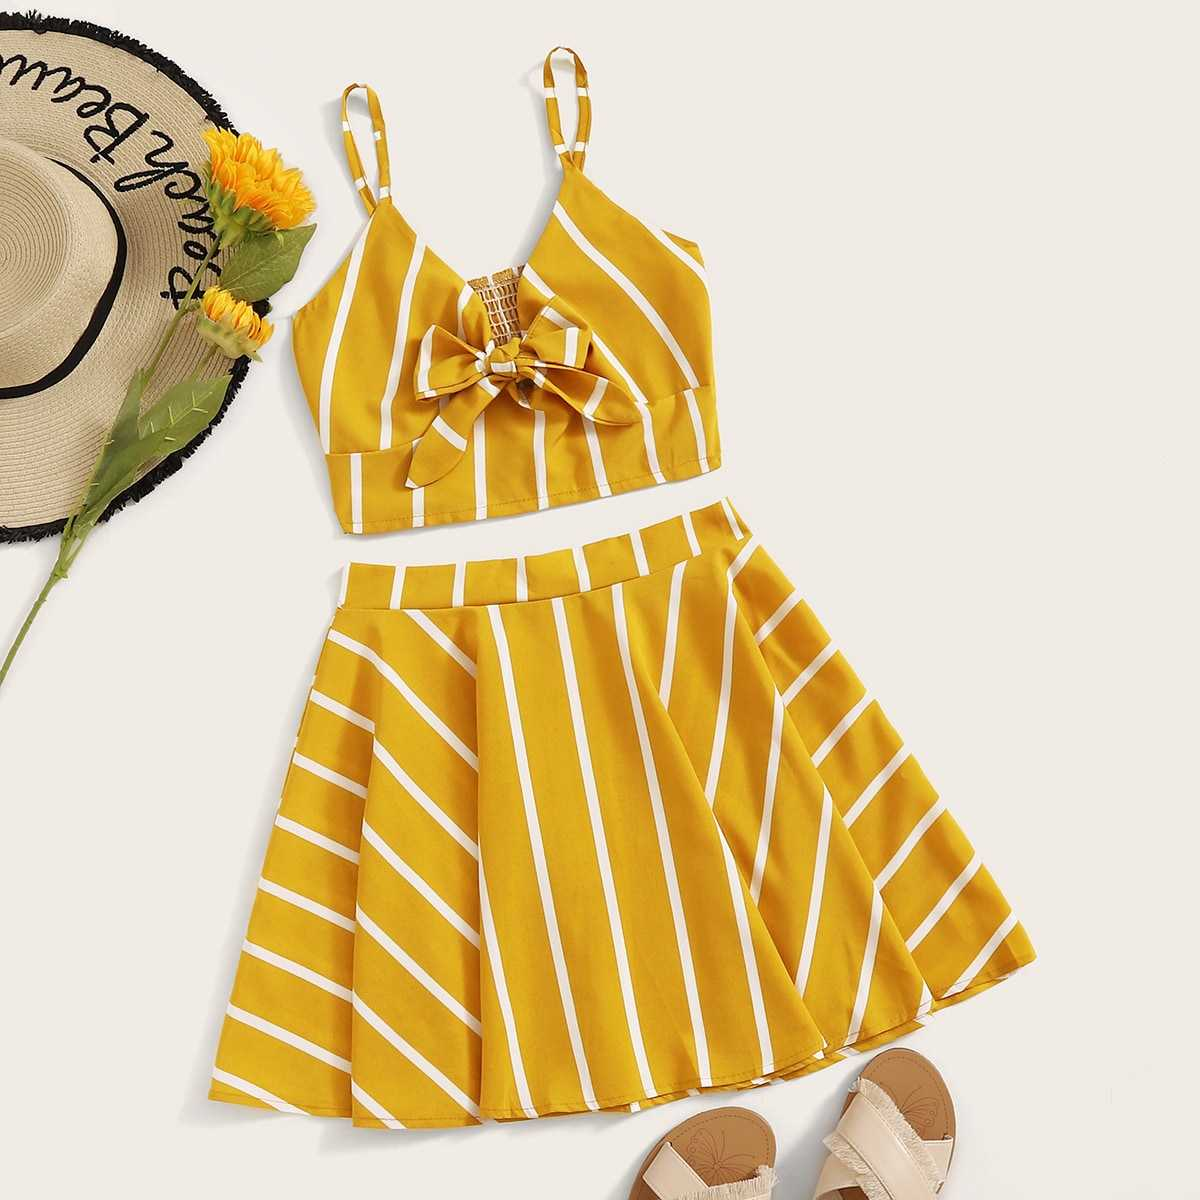 Striped Tie Front Shirred Cami Top With Skirt in Yellow by ROMWE on GOOFASH